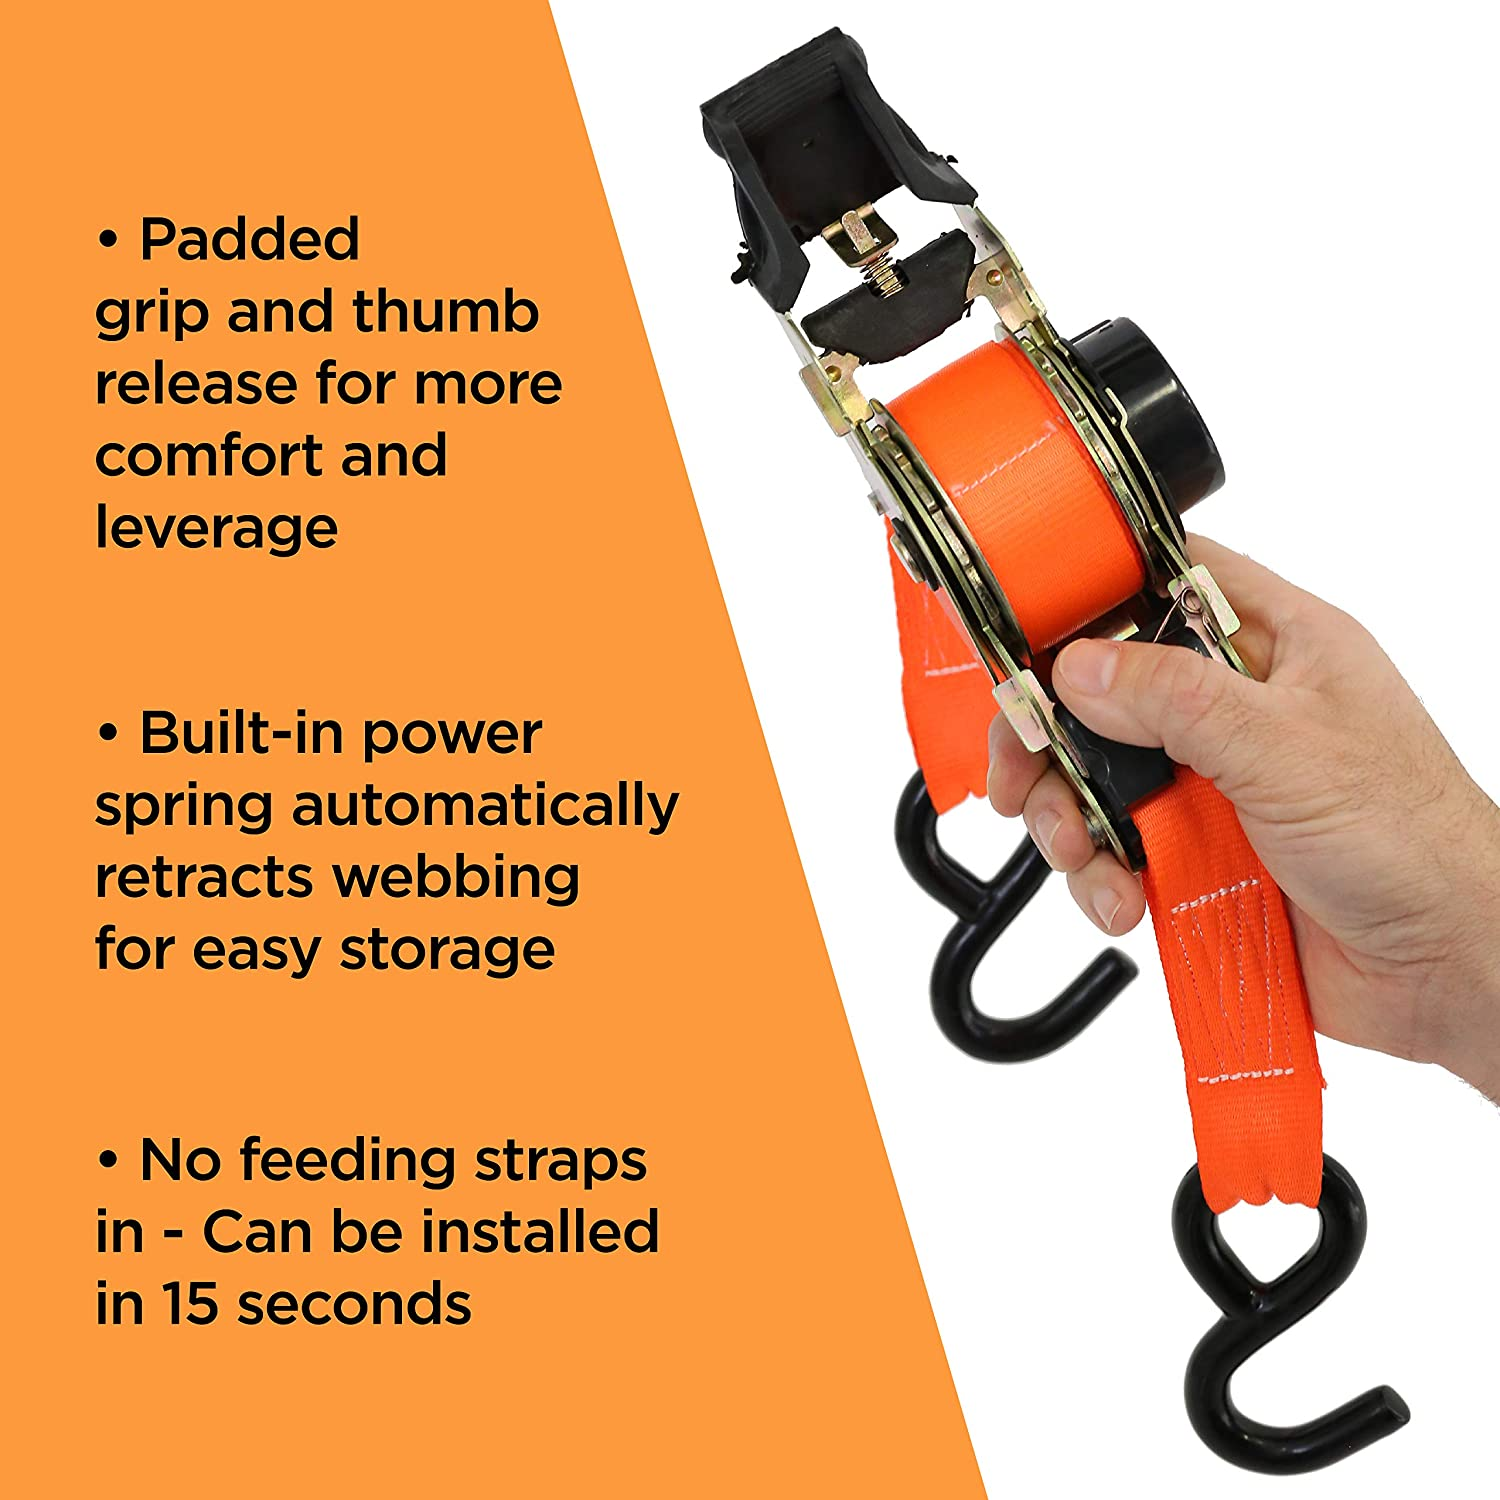 Boats and Appliances with Patented Technology 173W SmartStraps 10-Foot Retractable Ratchet Straps 3,000 lbs Break Strength Haul Motorcycles 1,000 lbs Safe Work Load